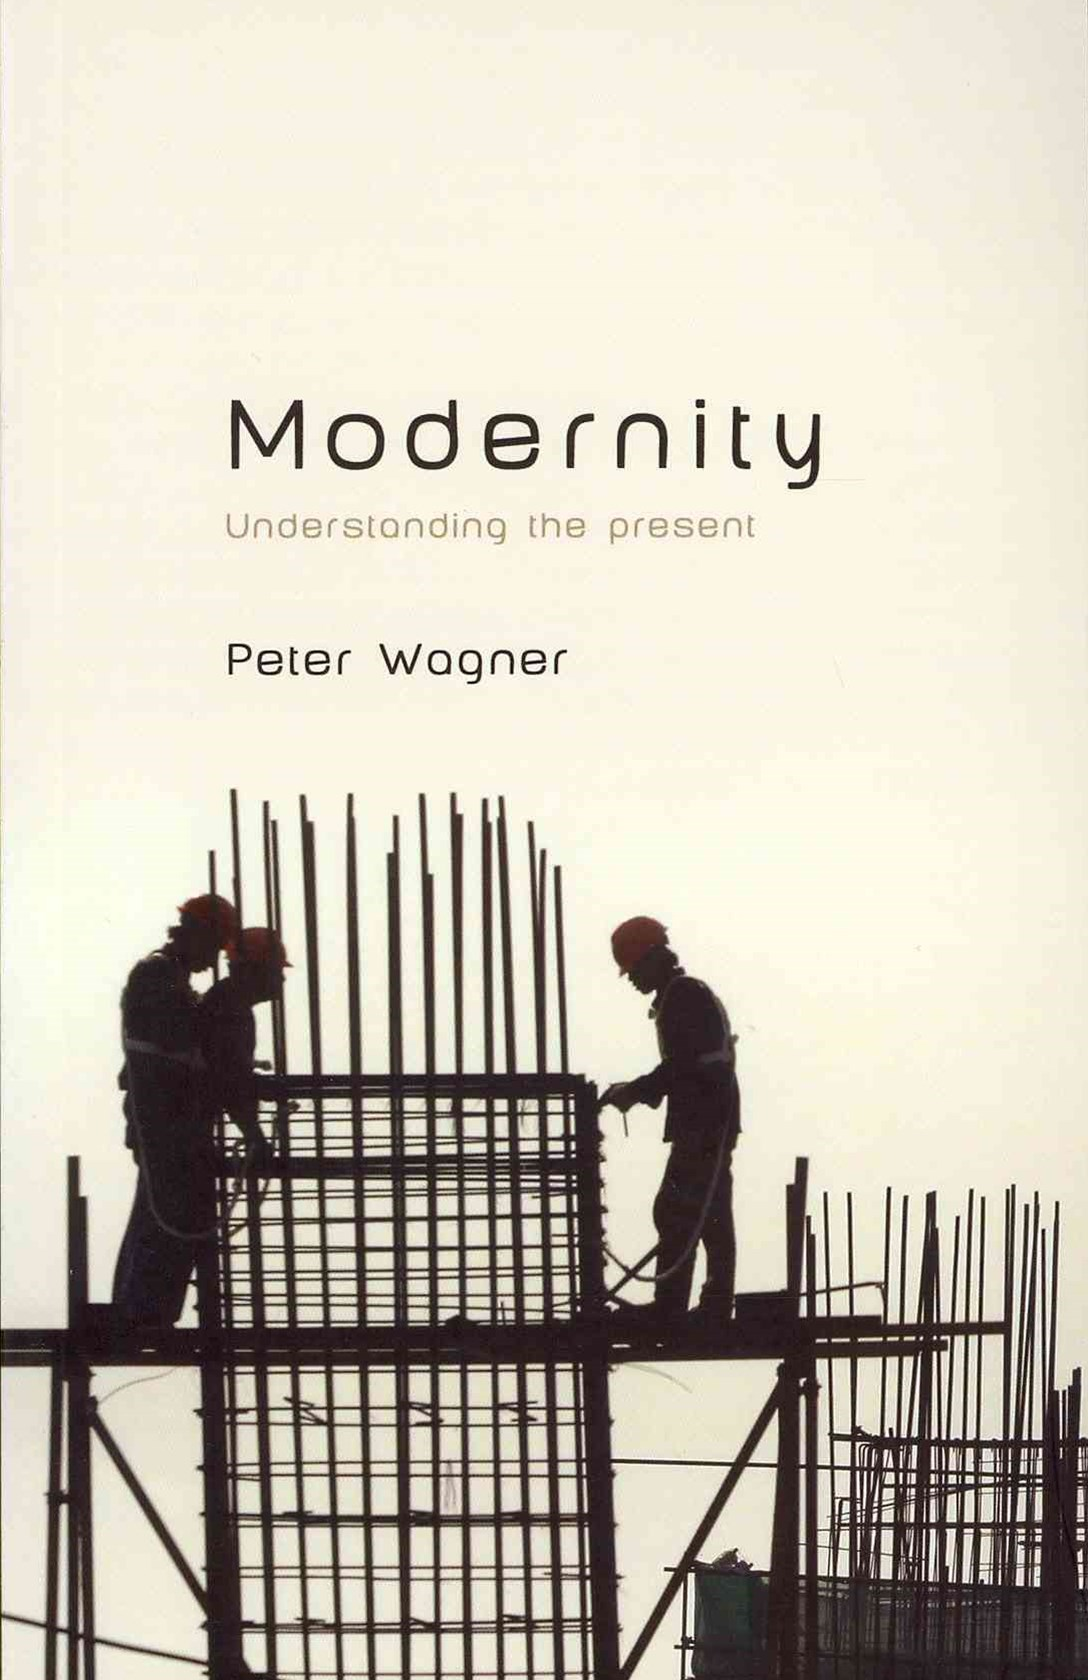 Modernity - Understanding the Present